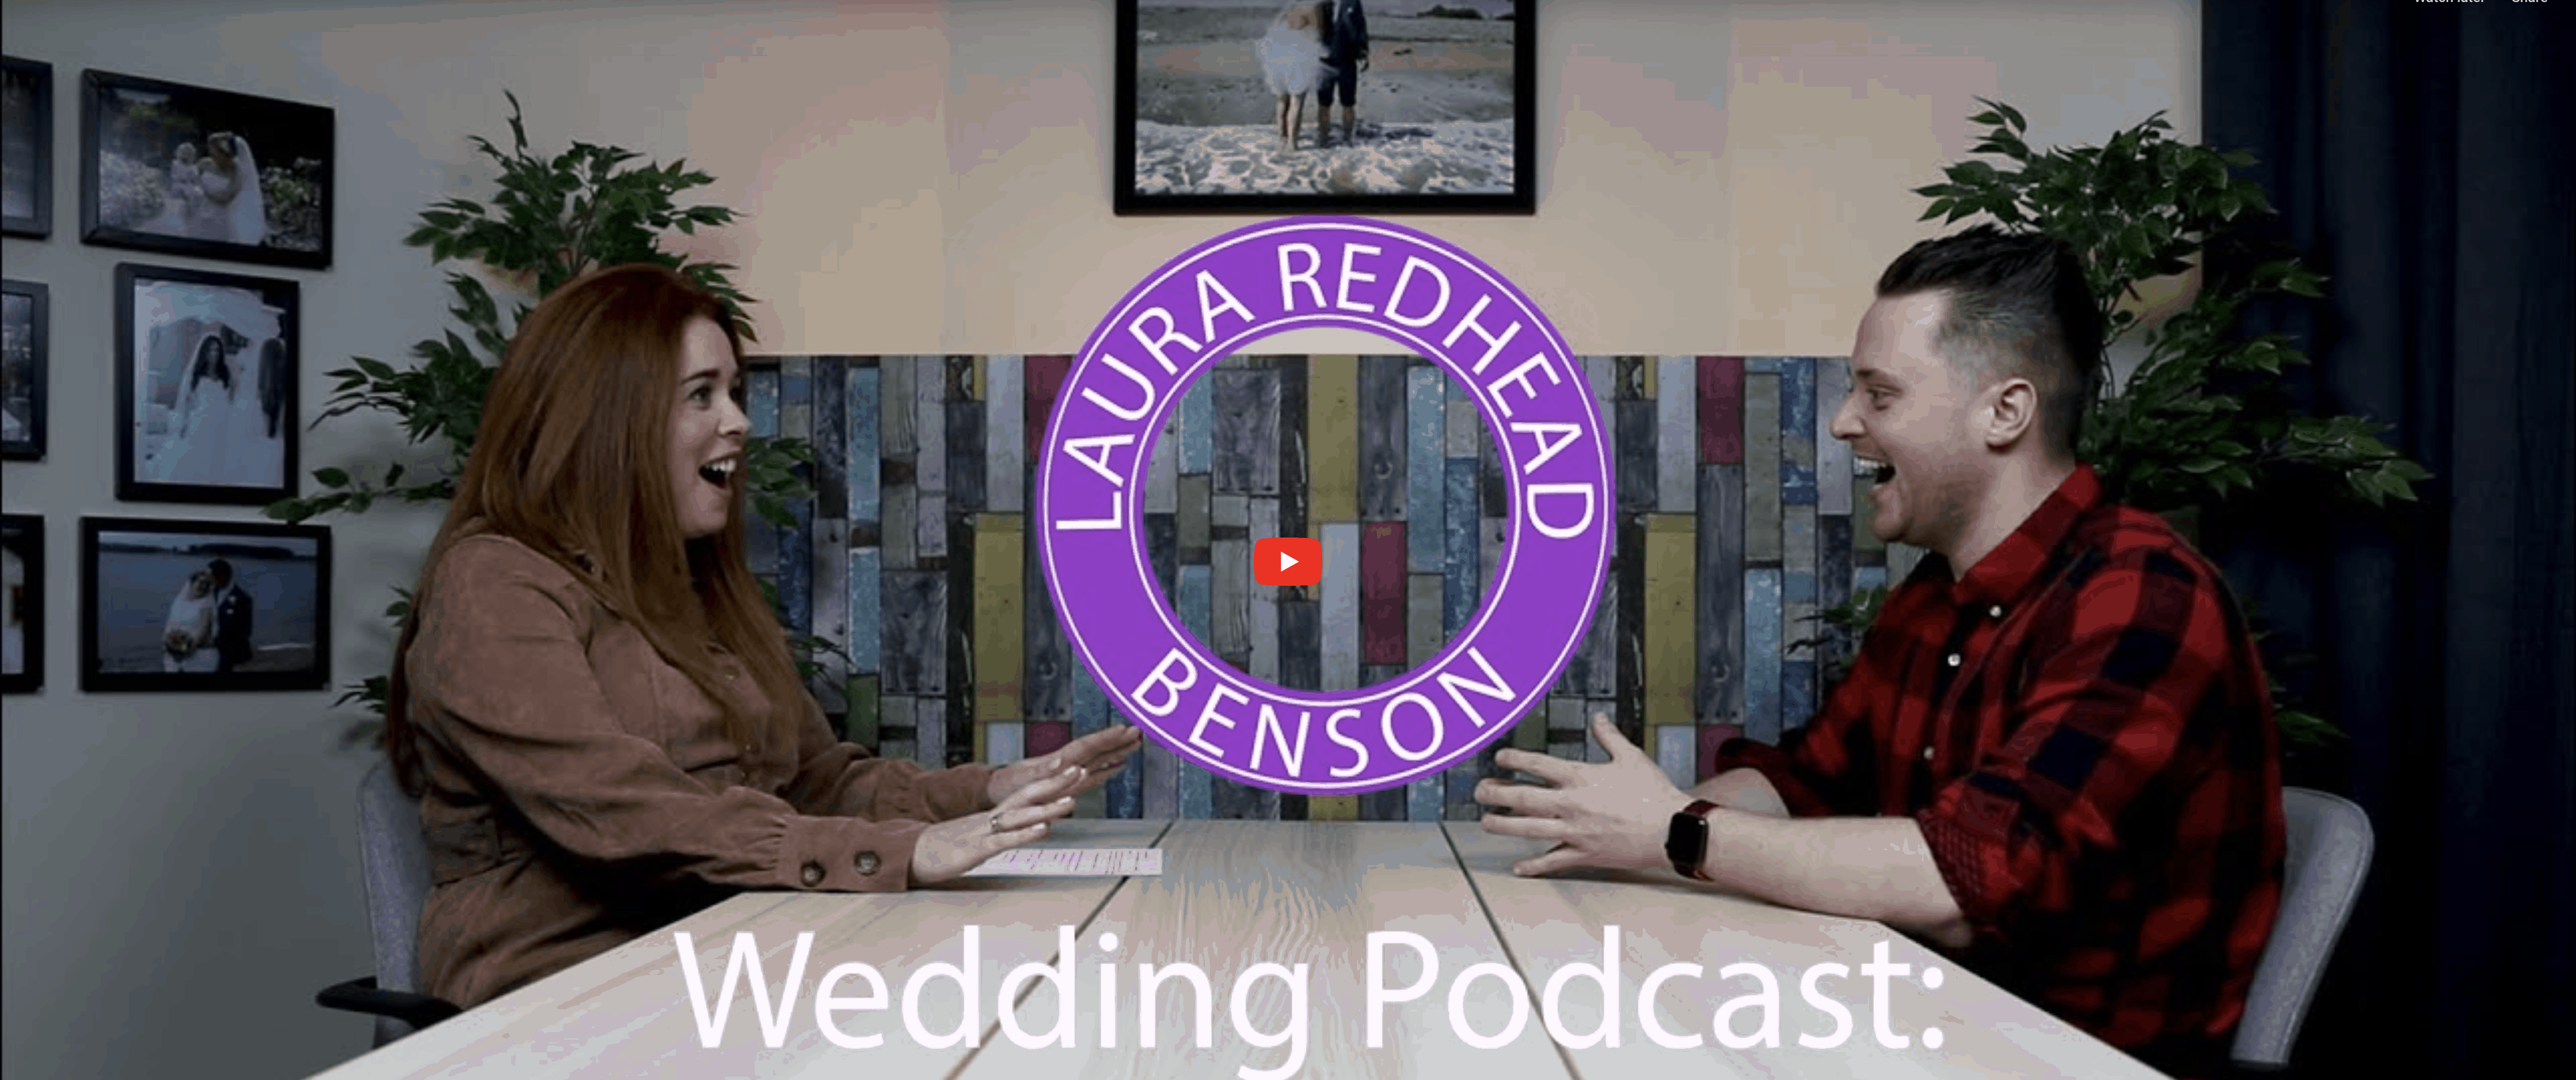 Wedding Podcast with Laura Redhead Benson